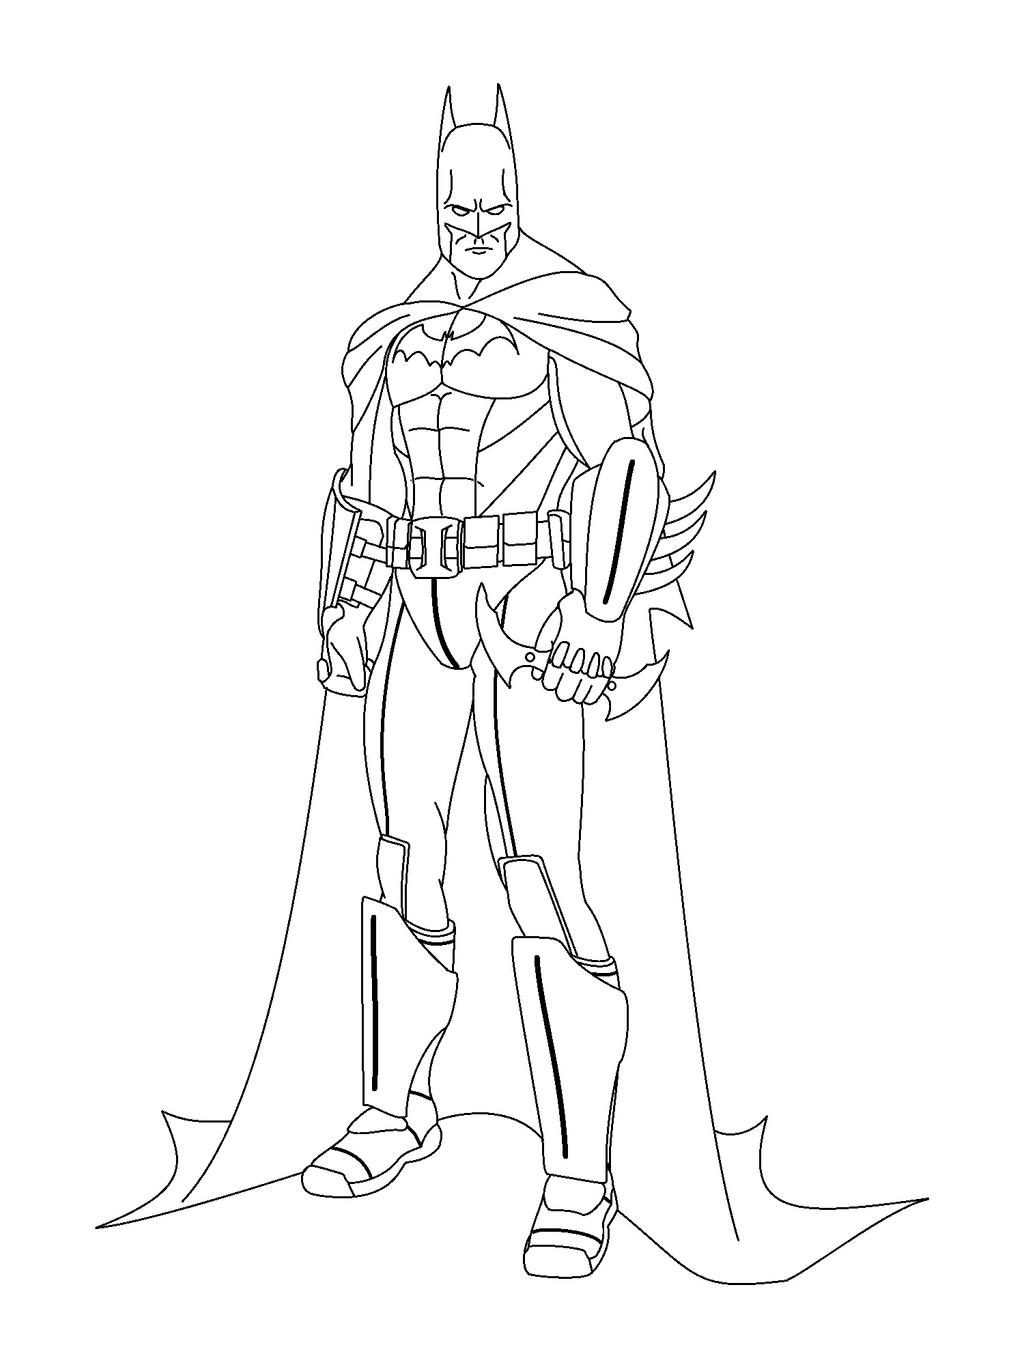 Full Body Coloring Pages Batman Arkham Knight Coloring Pages